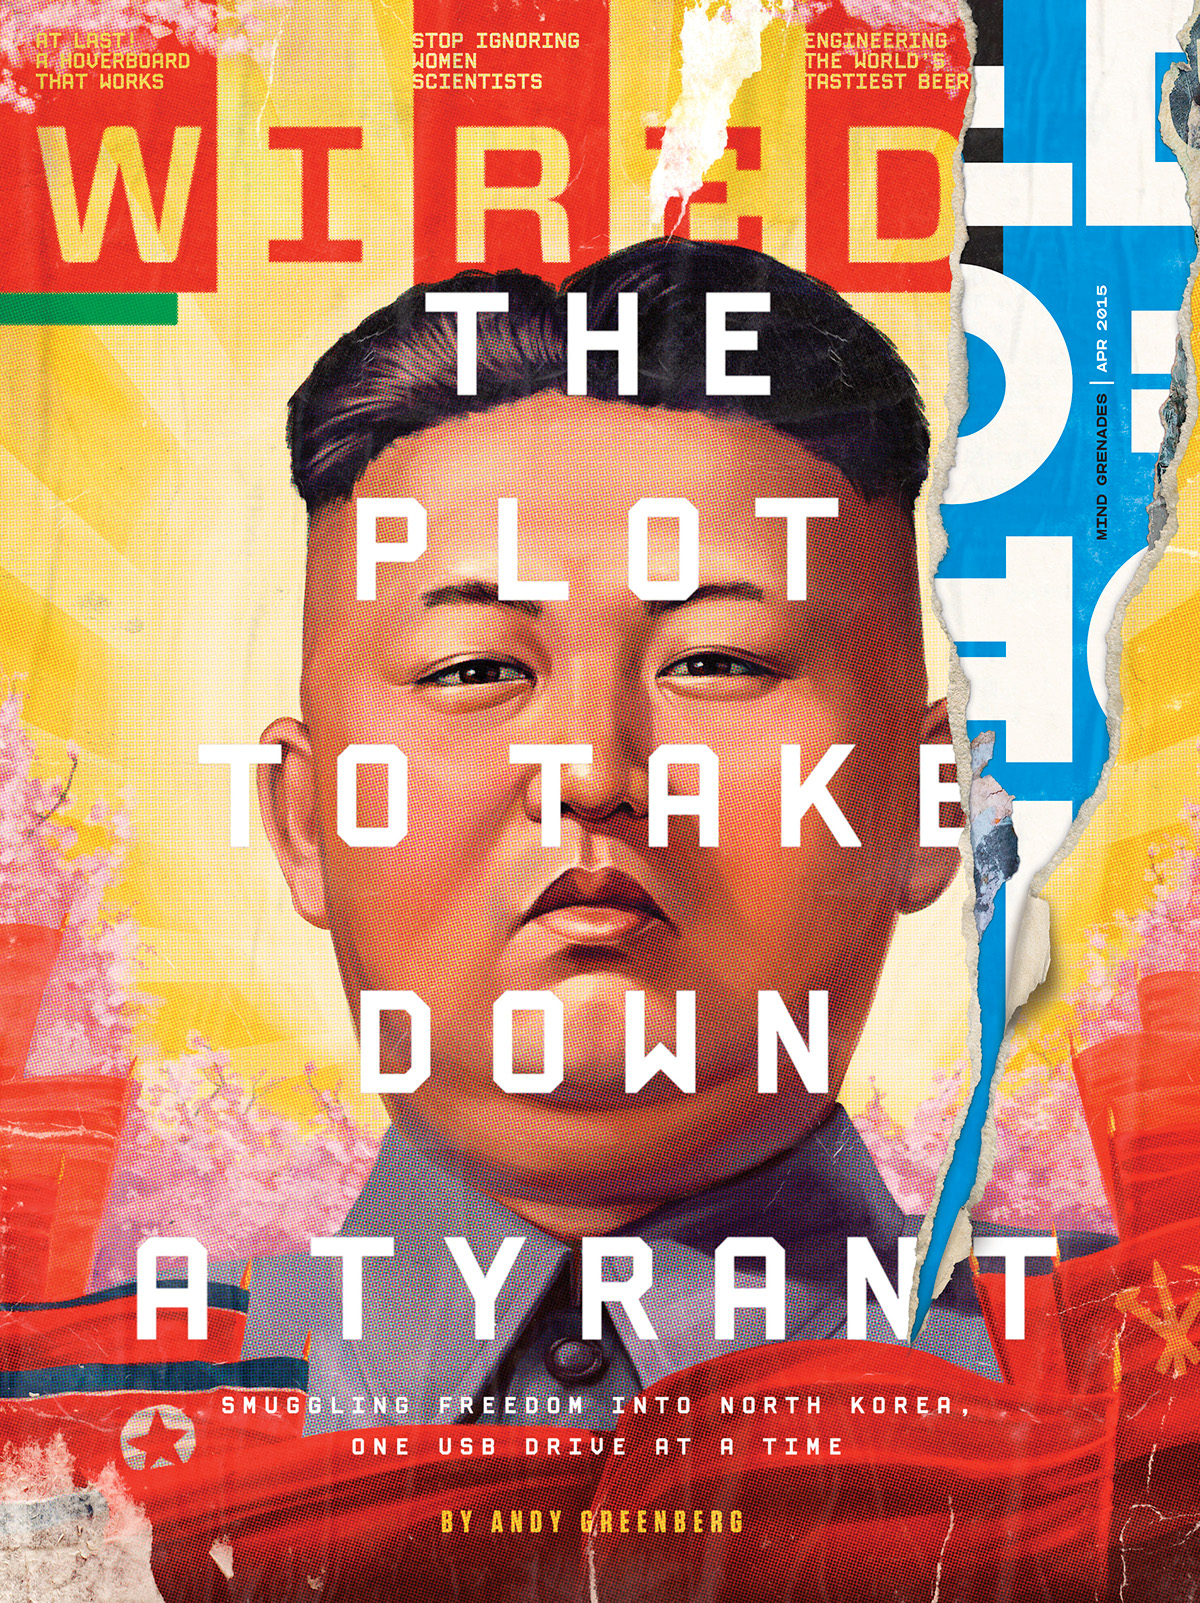 Wired Cover   The Plot To Take Down A Tyrant Wired On Behance